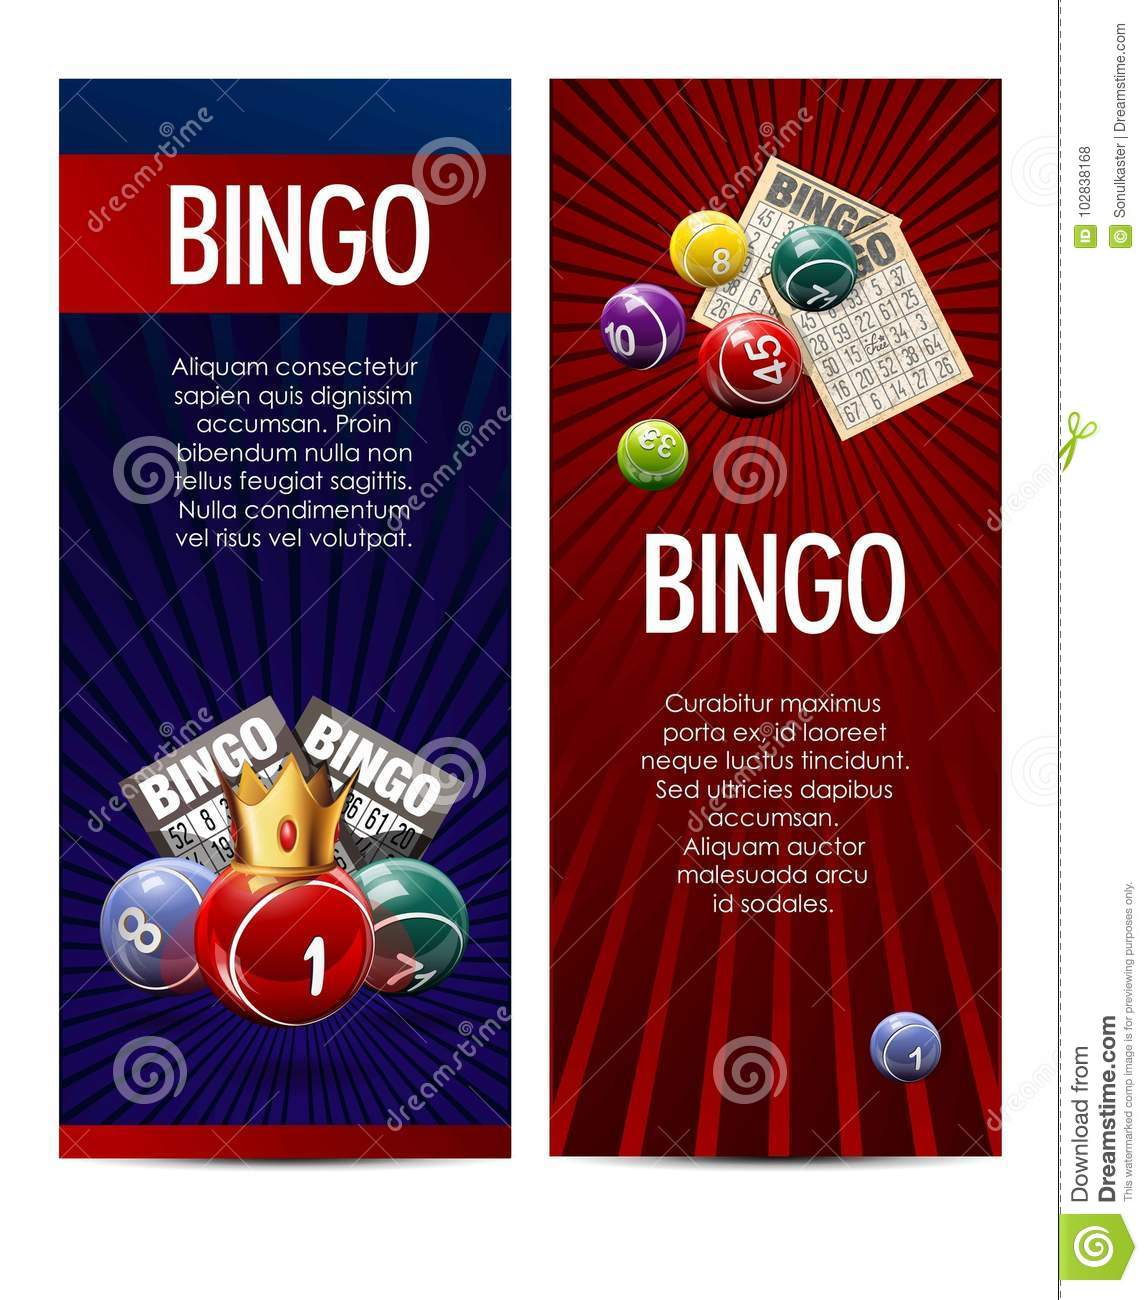 Bingo Lotto Lottery Banners Template  Stock Vector - Illustration of